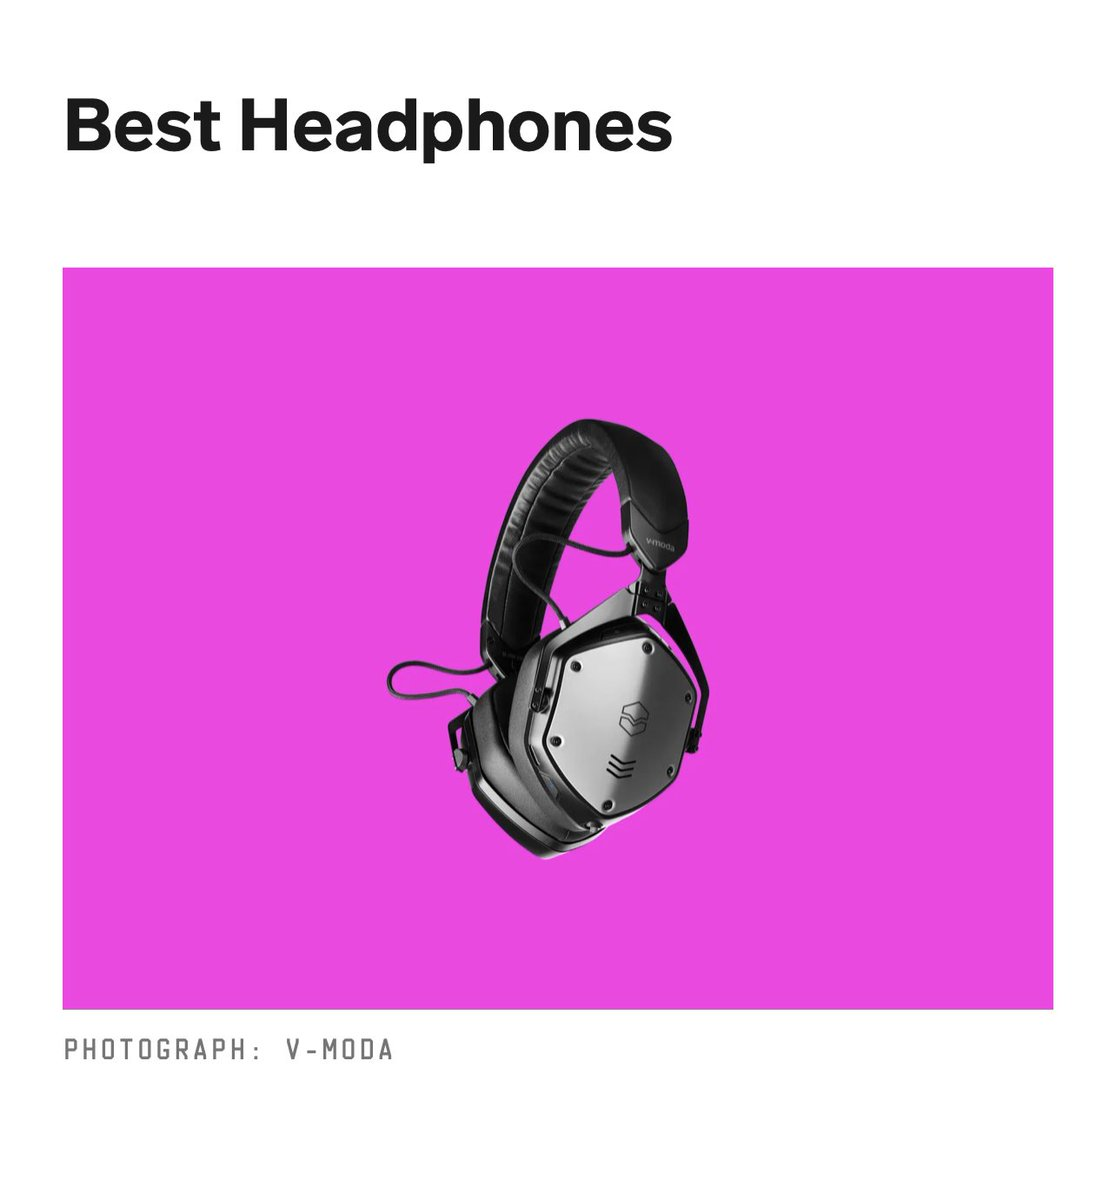 @WIRED Best Headphones at #CES2021 @VMODA